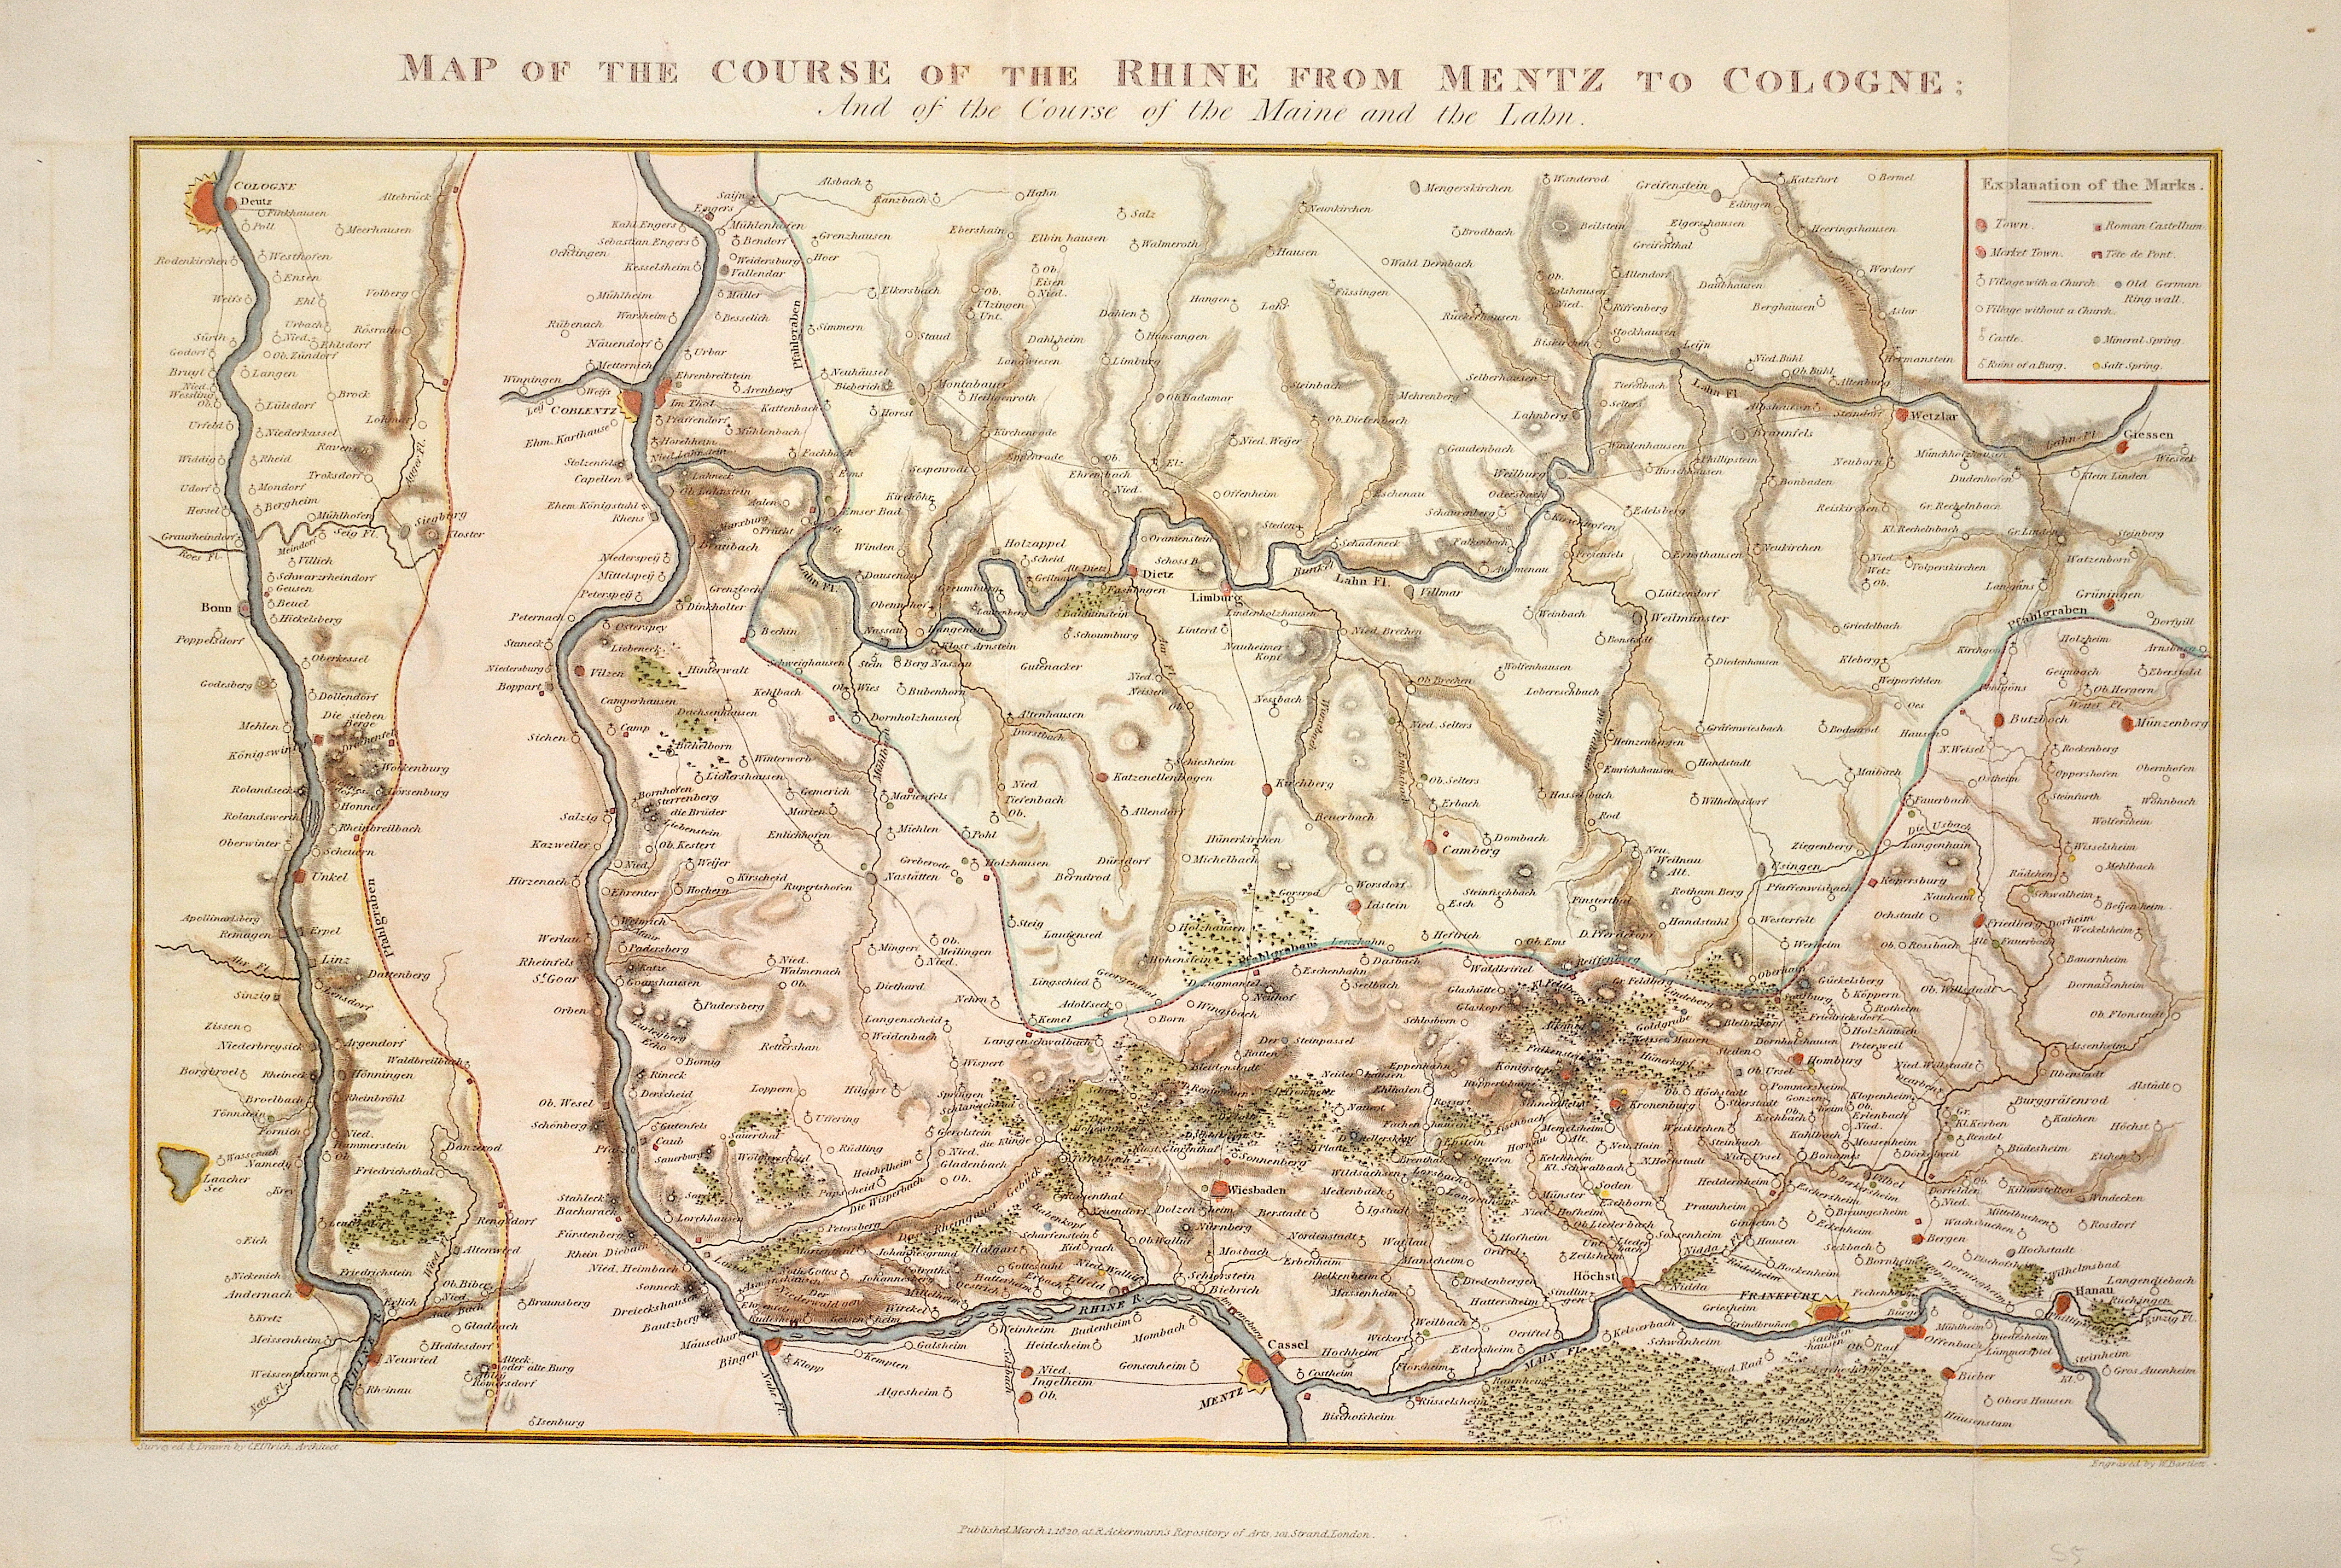 Bartlett Henry William Map of the course of the Rhine from Mentz to Cologne; And of the Course of the Maine and the Labn.